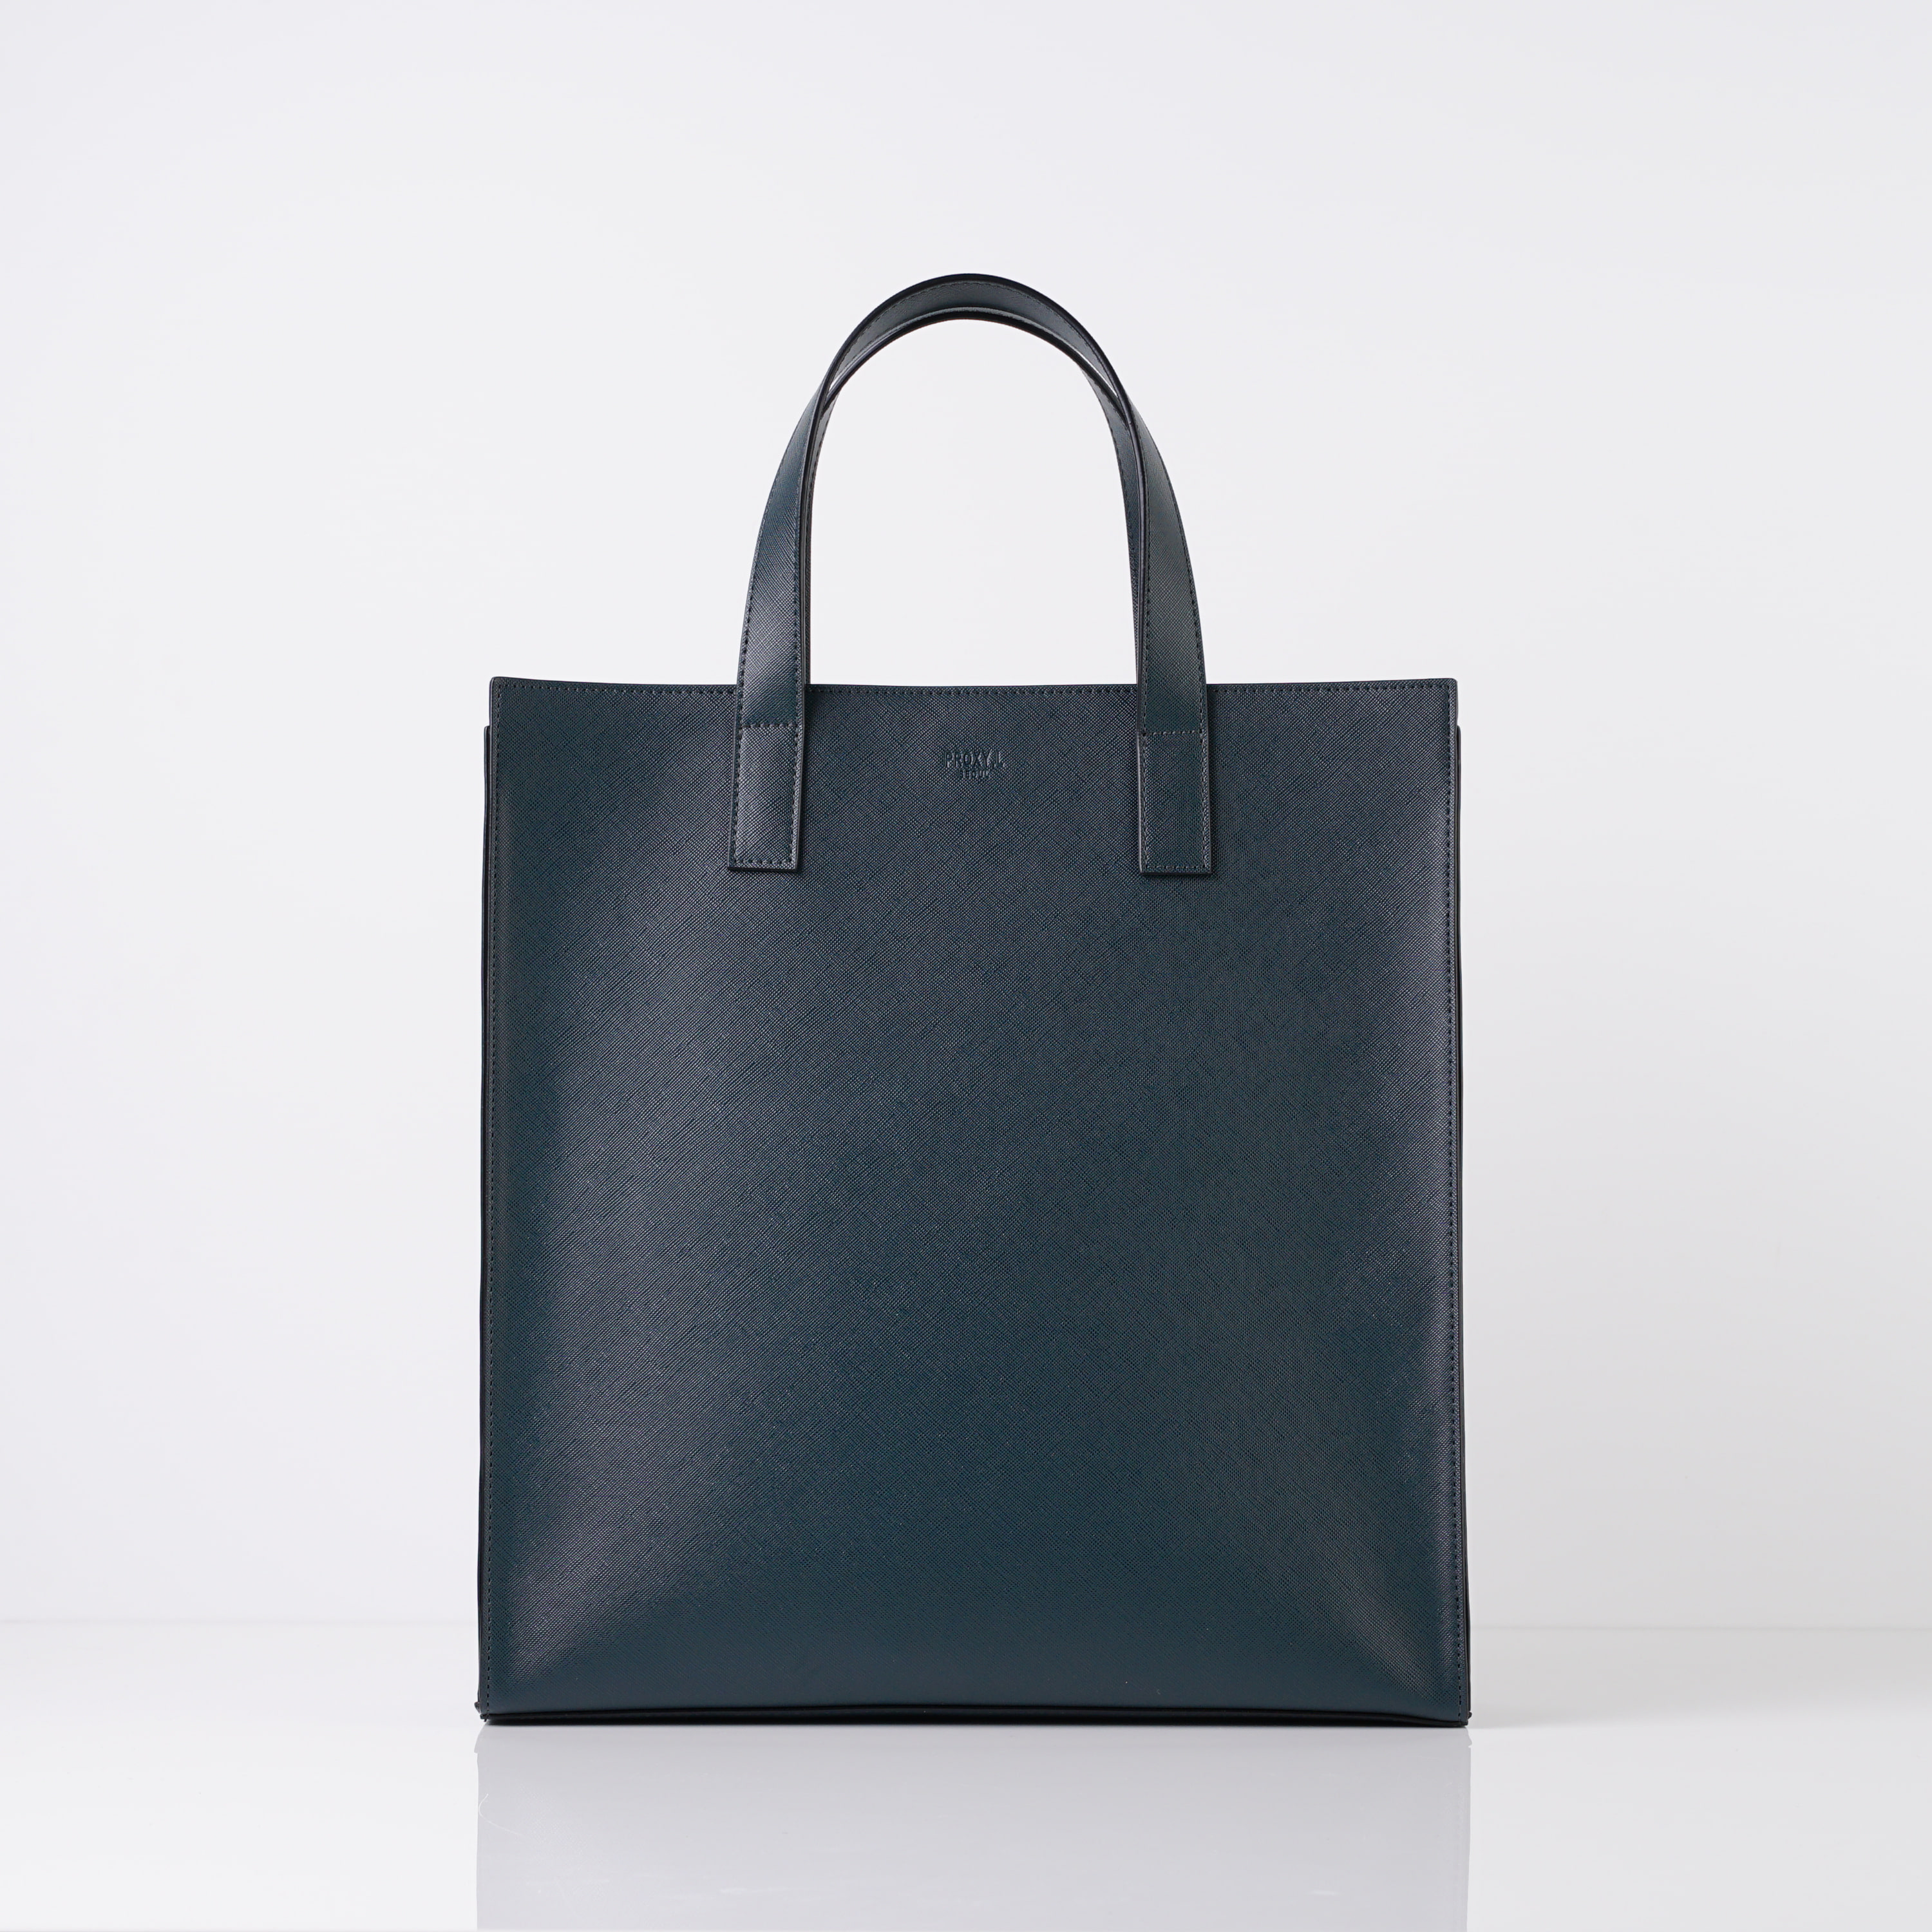 vegan leather square tote large (GR)